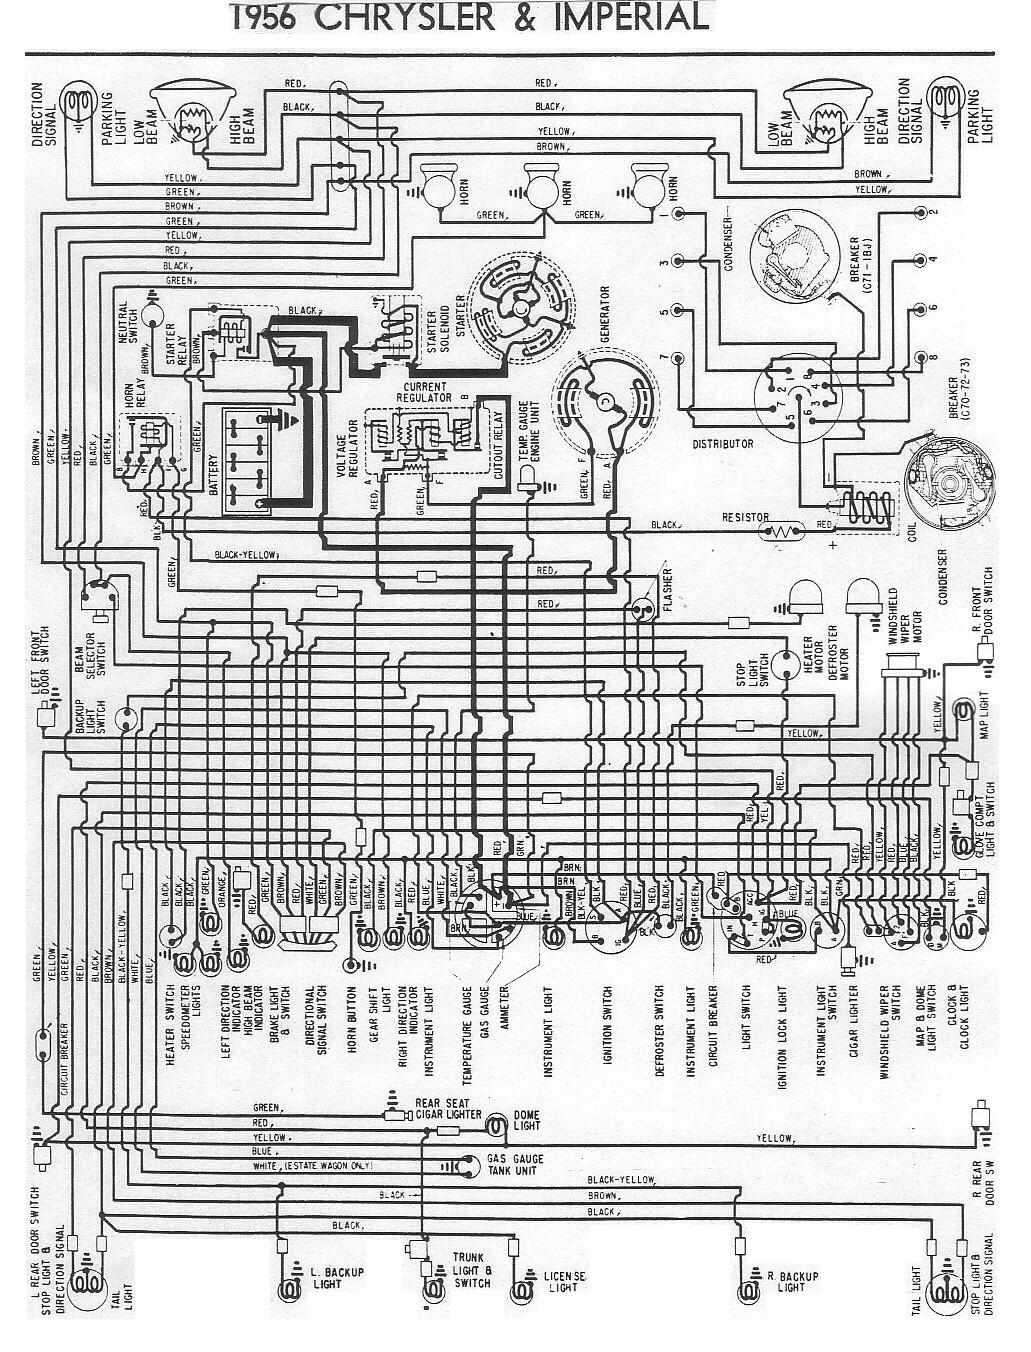 1955 chrysler wiring diagram - wiring diagrams attract-clue -  attract-clue.massimocariello.it  massimocariello.it